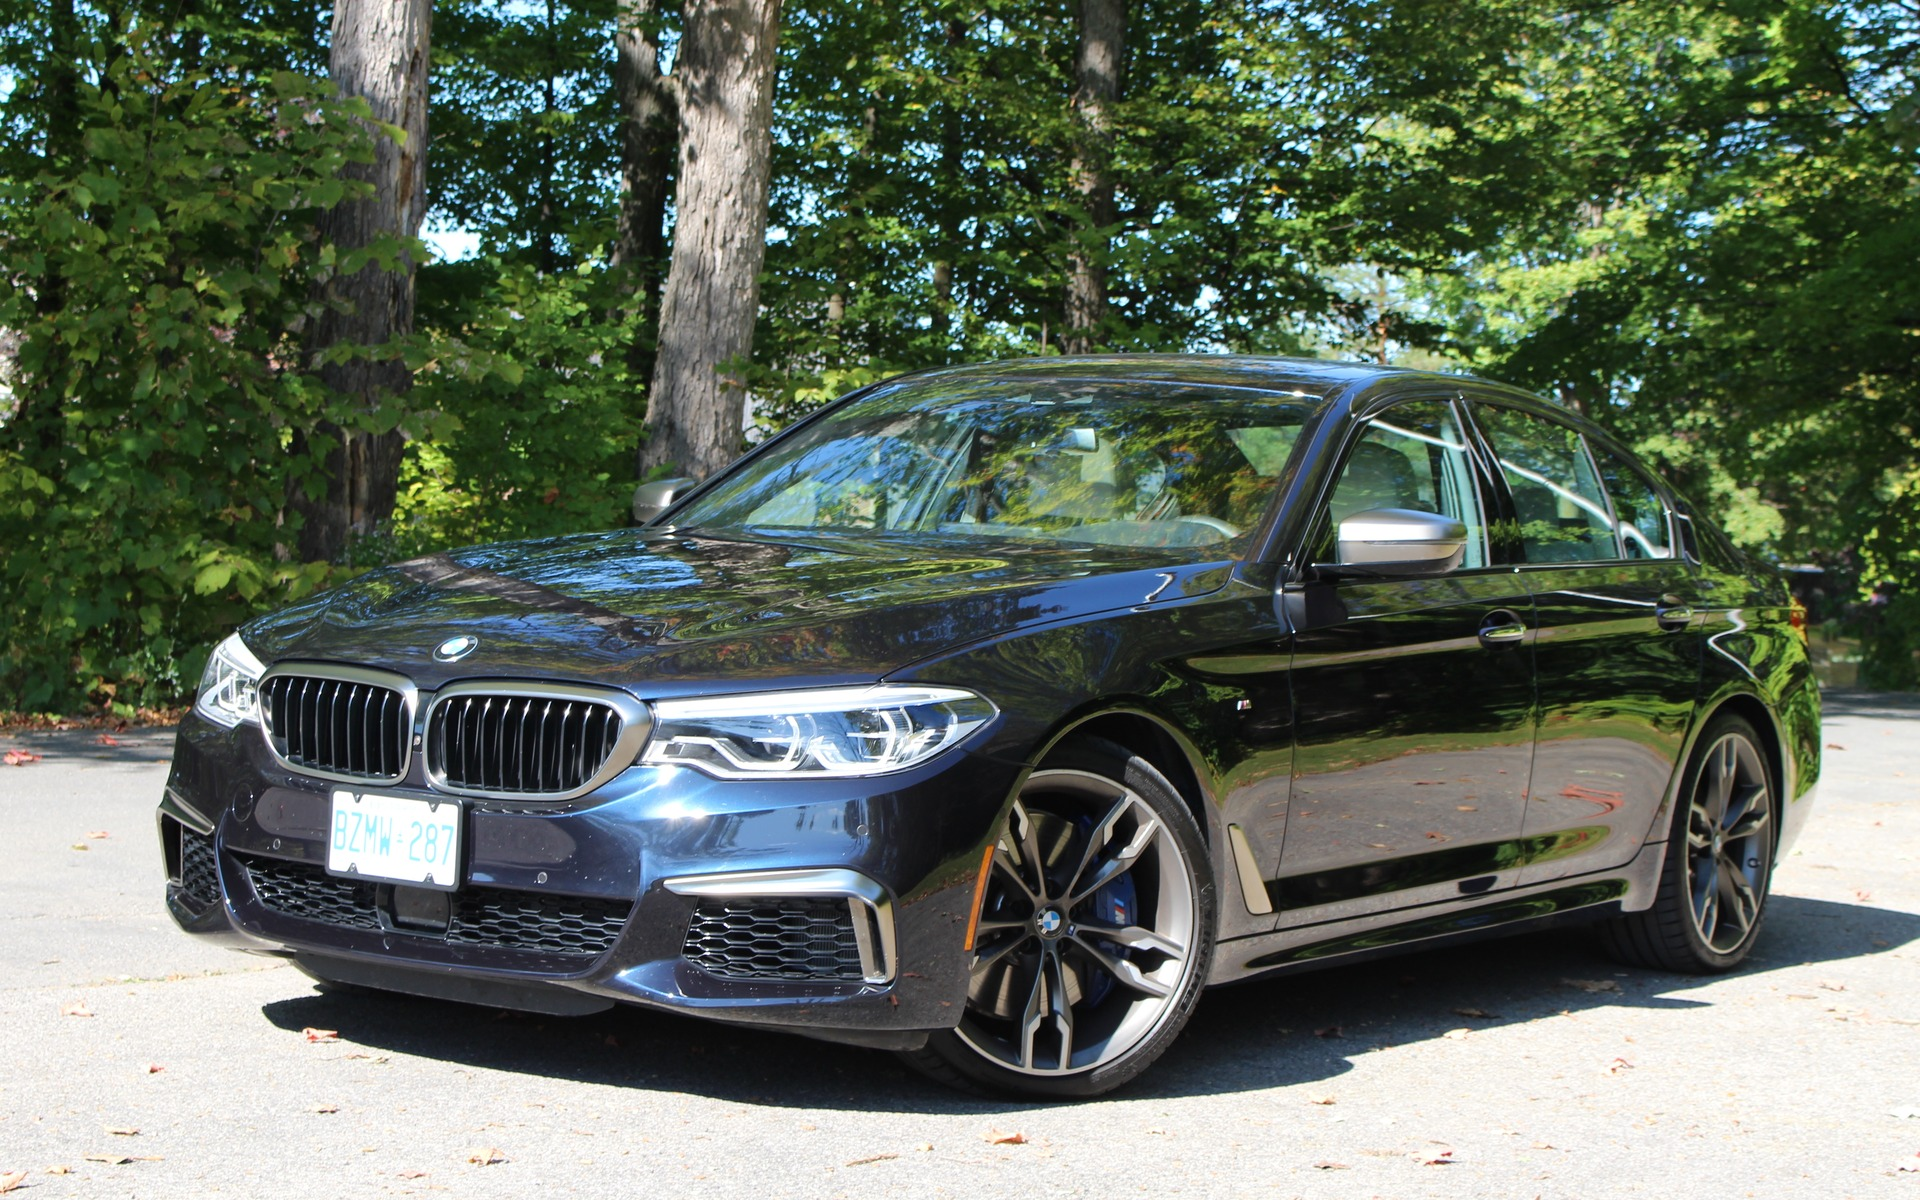 2018 Bmw M550i Xdrive Not Quite An M5 But Close The Car Guide